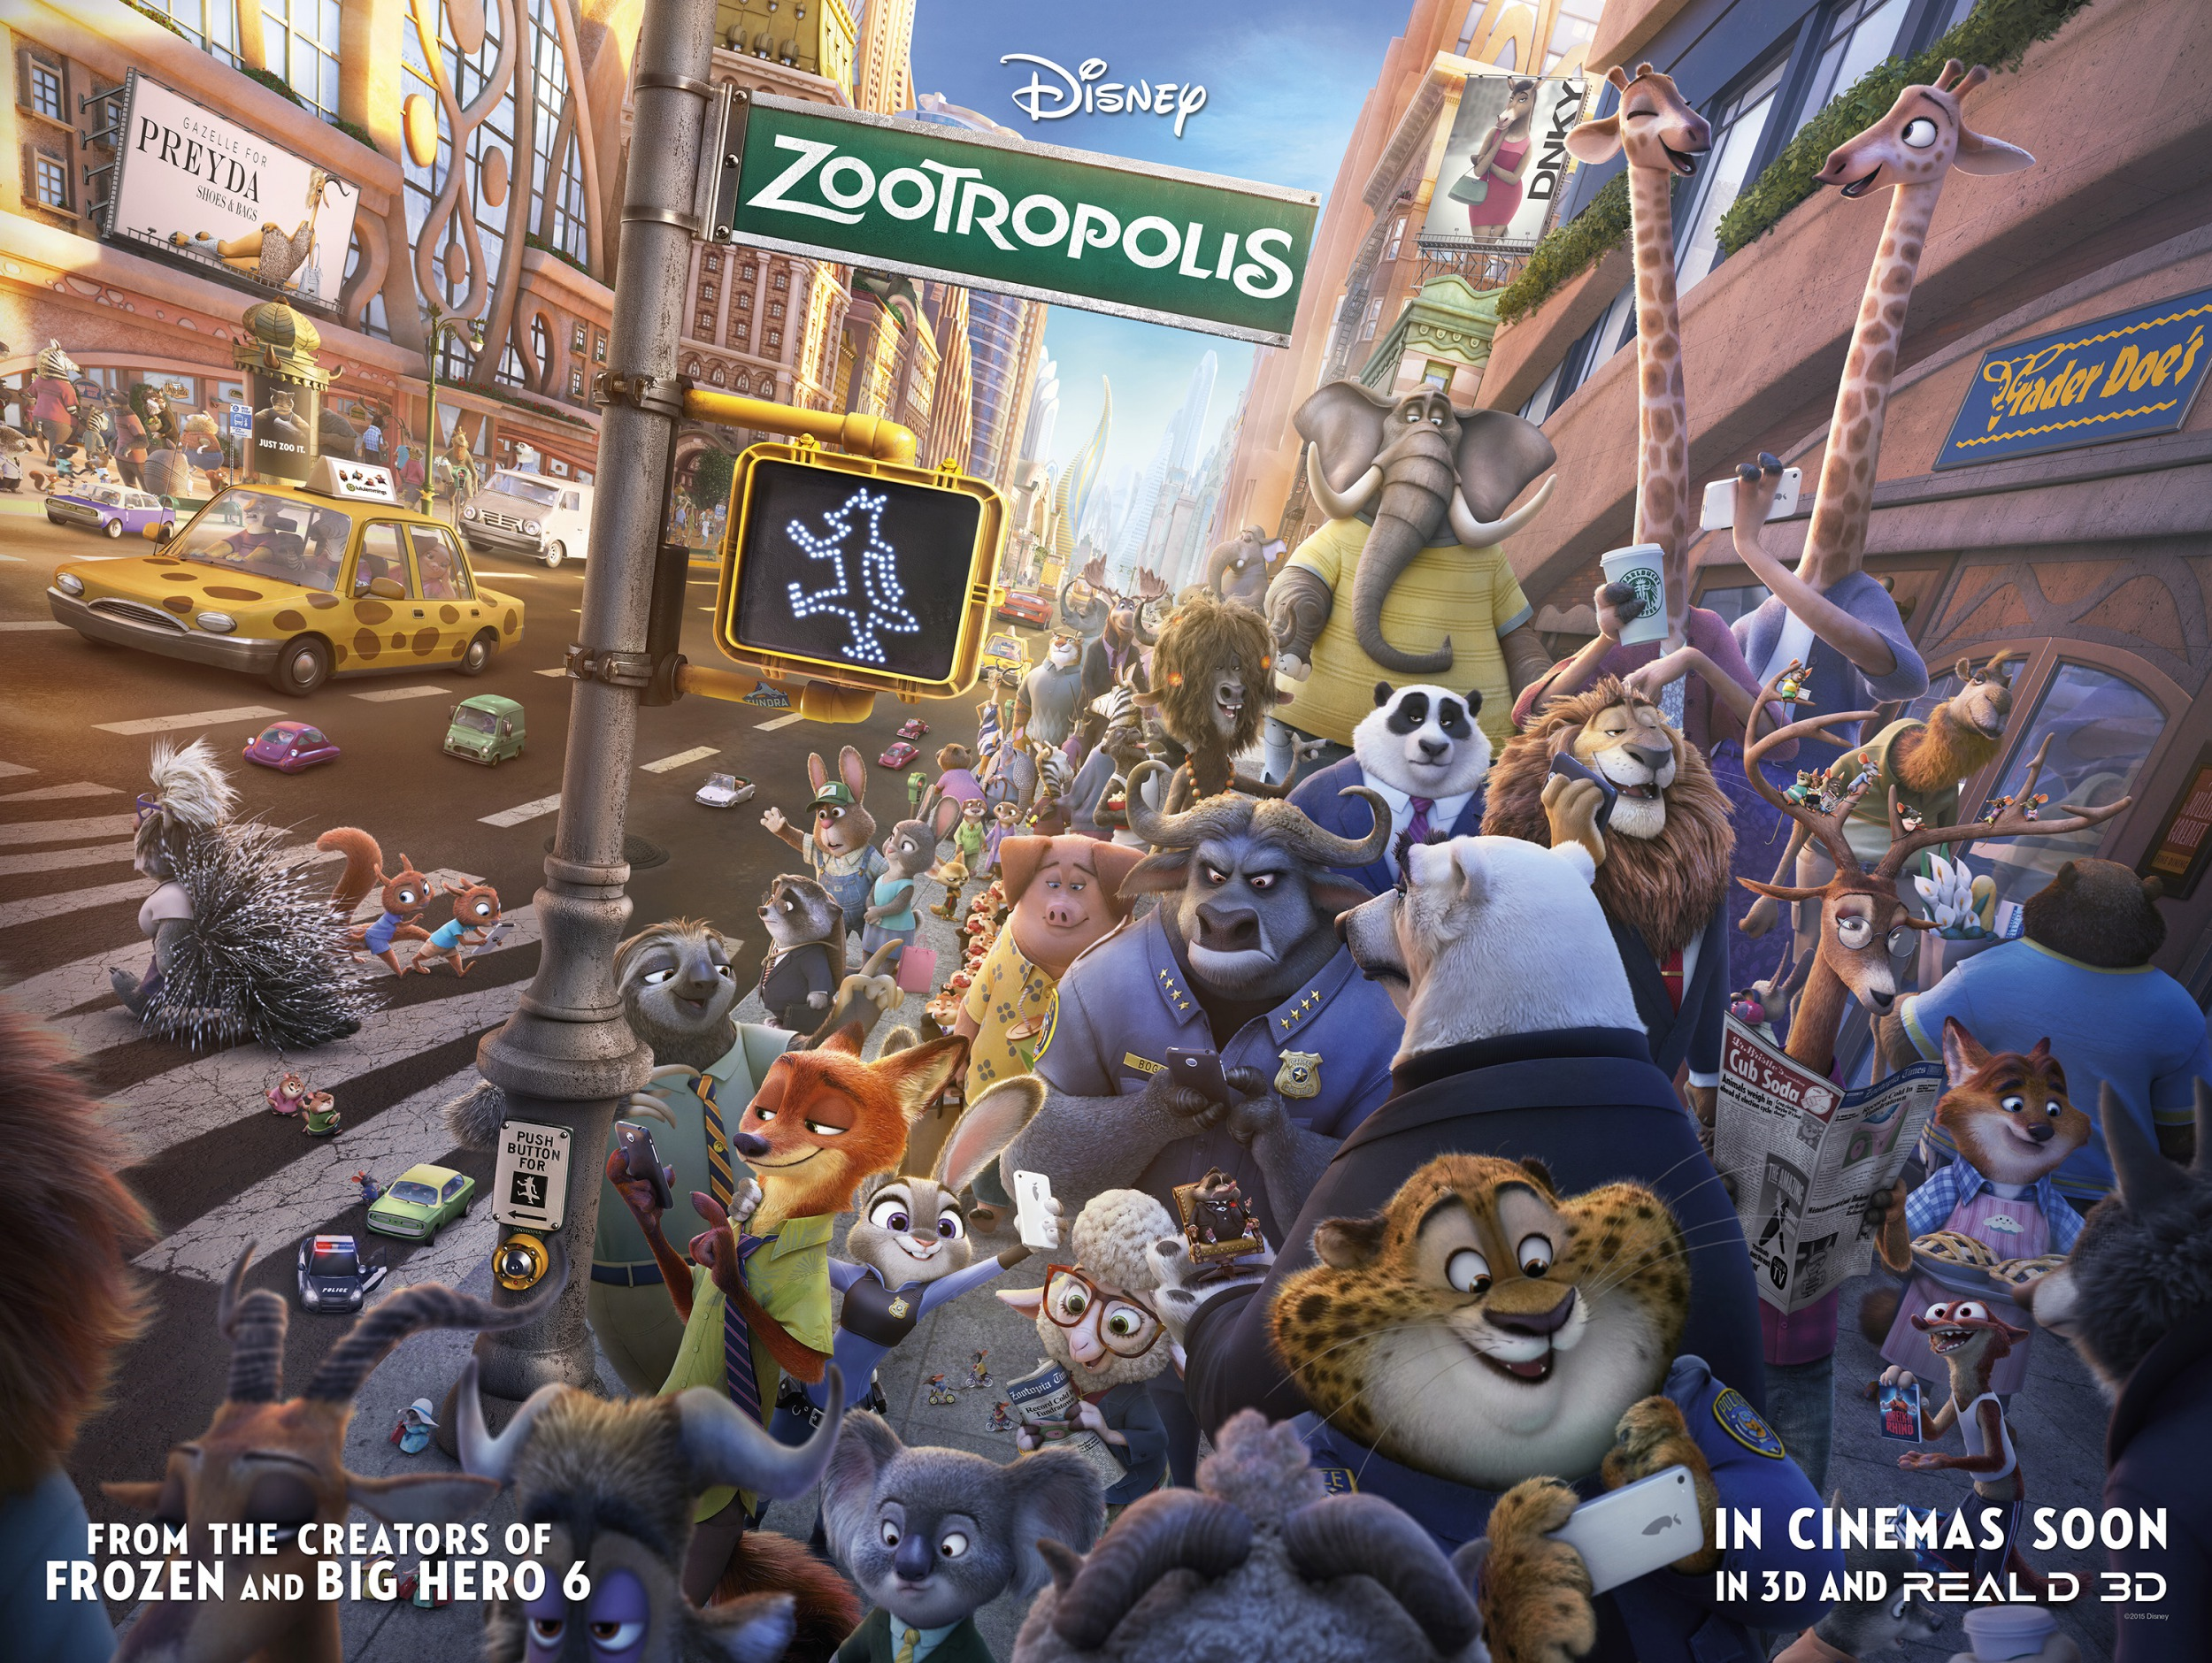 Zootropolis: The Difficulty of Using Animals as an Analogy for Race